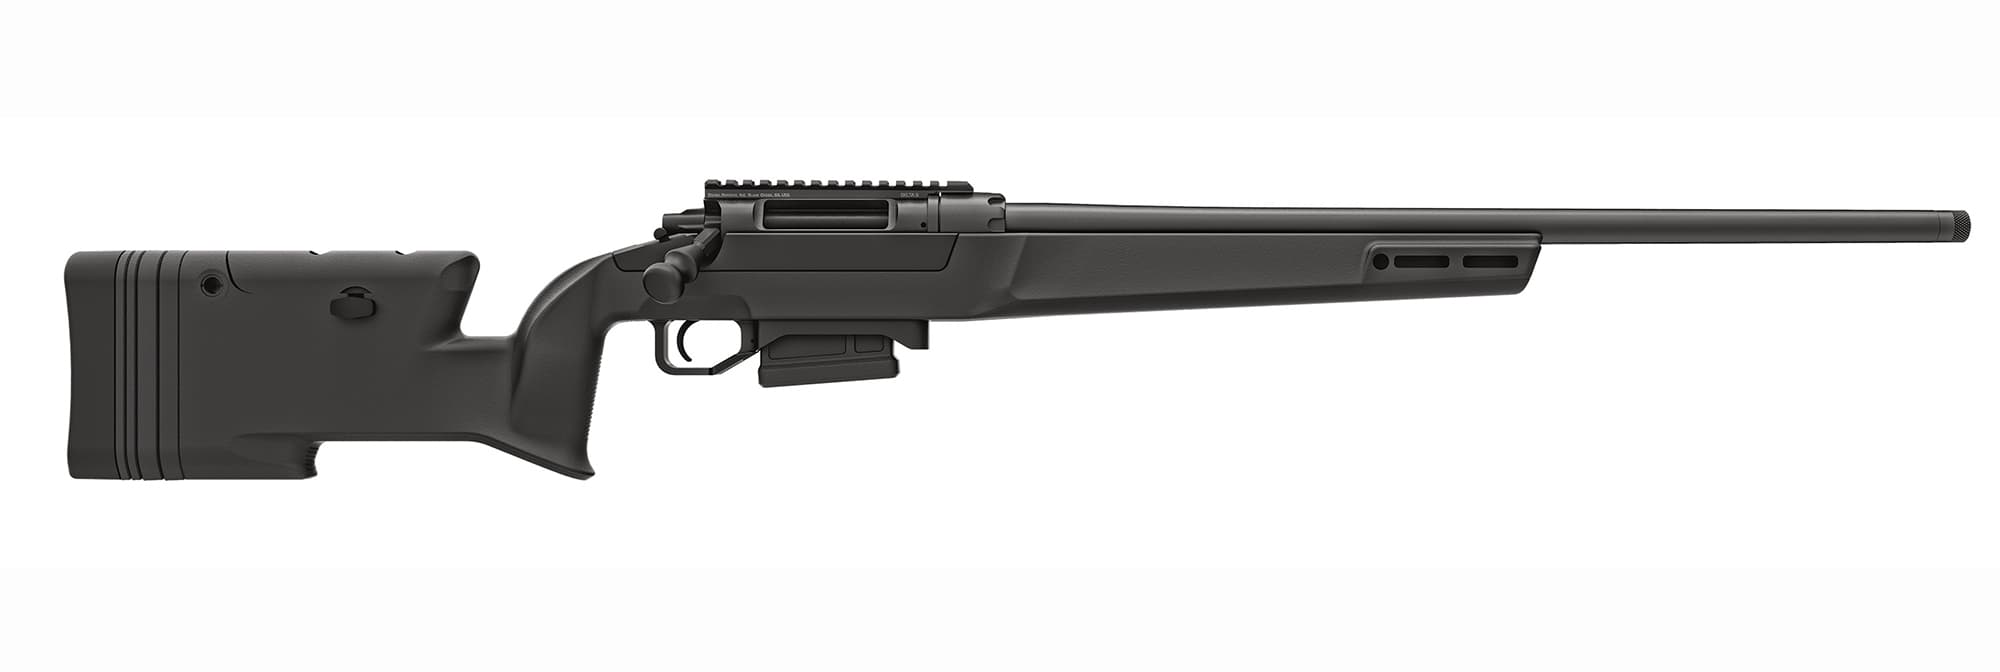 Daniel Defense DELTA 5 Bolt-Action Rifle